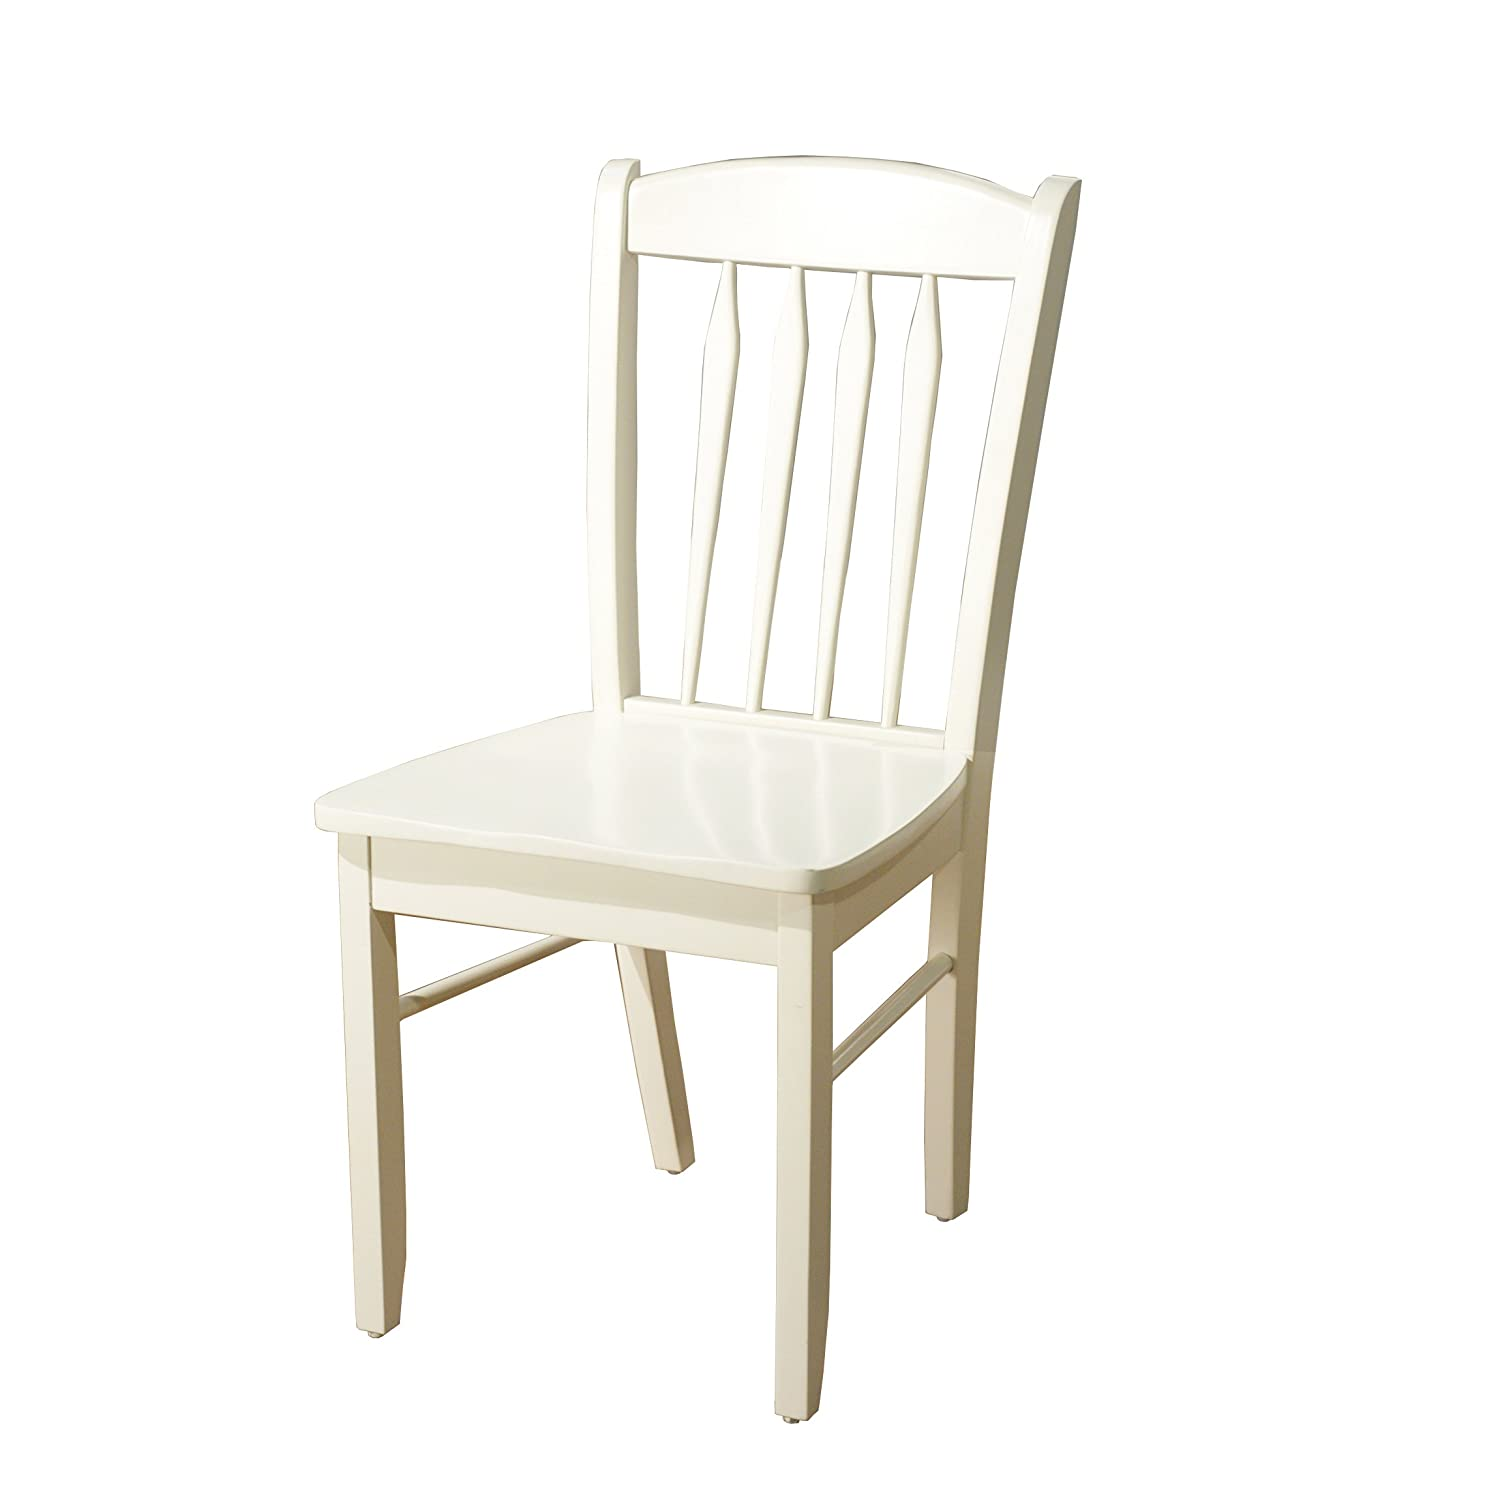 Target Marketing Systems 33418wht Savannah Dining Chair White